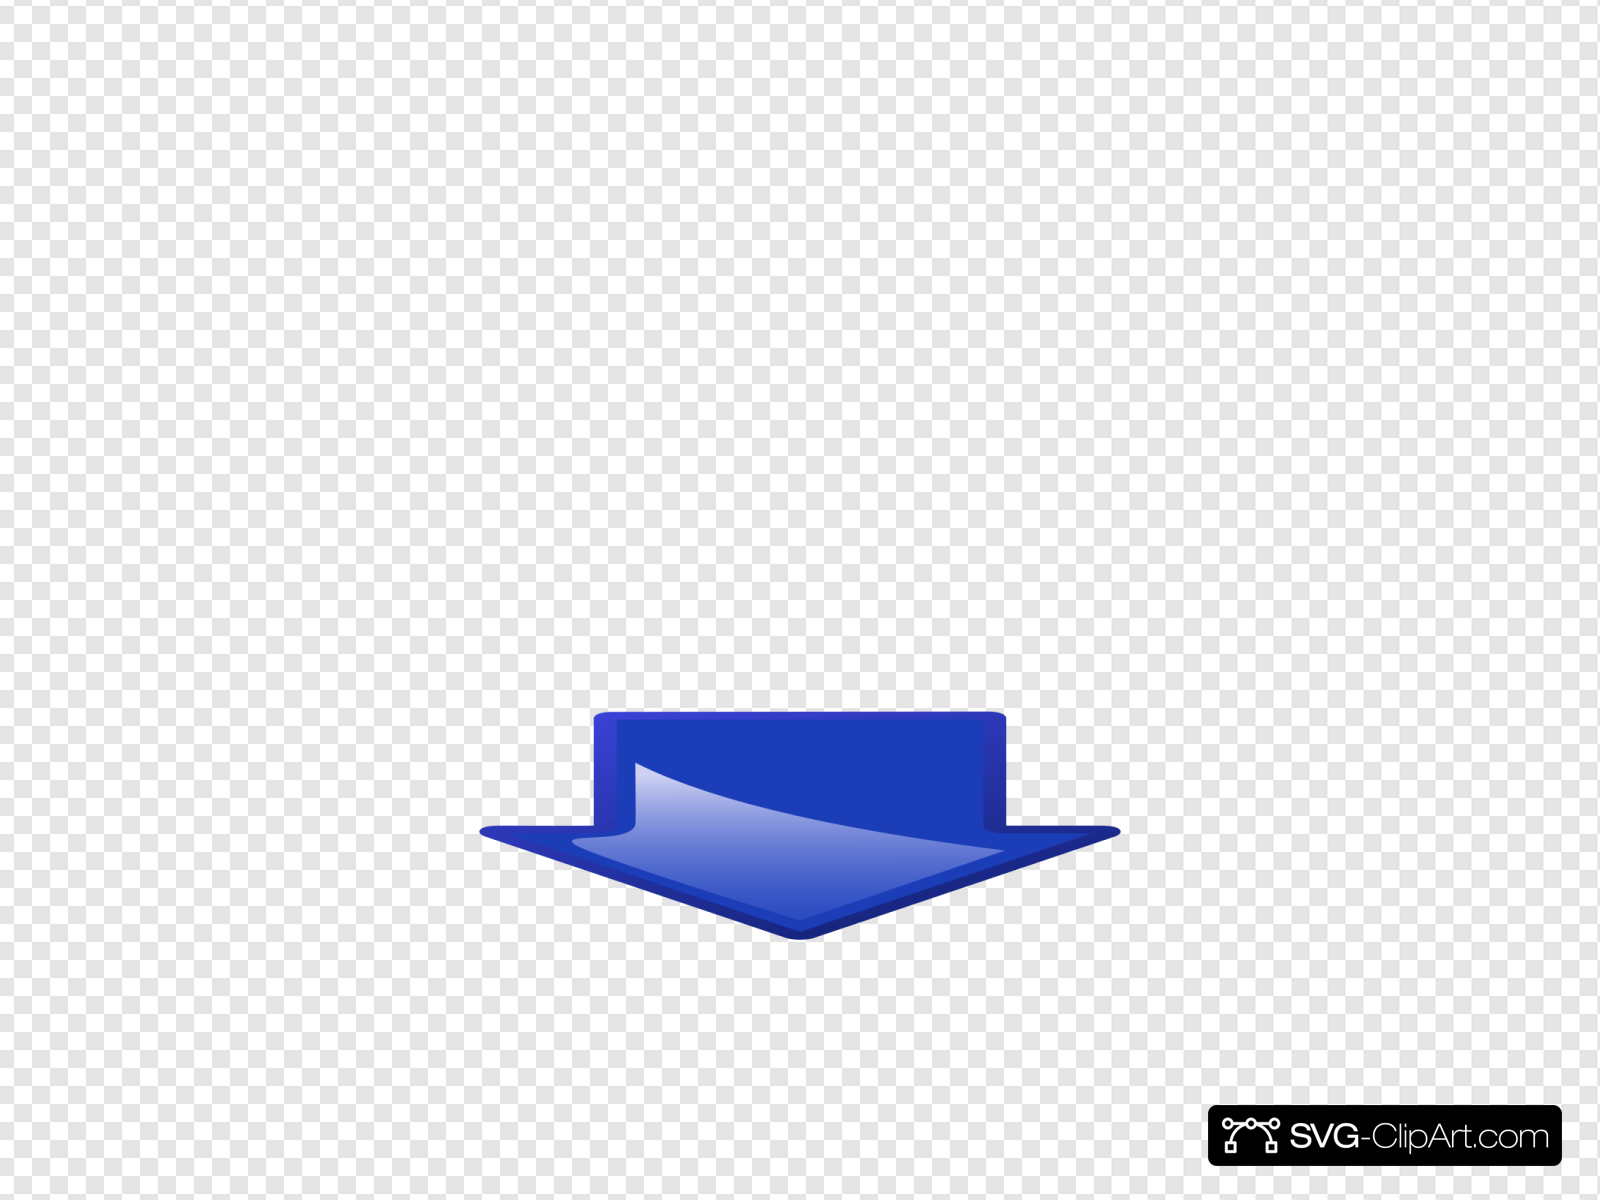 Wide Down Arrow 2 Clip art, Icon and SVG.